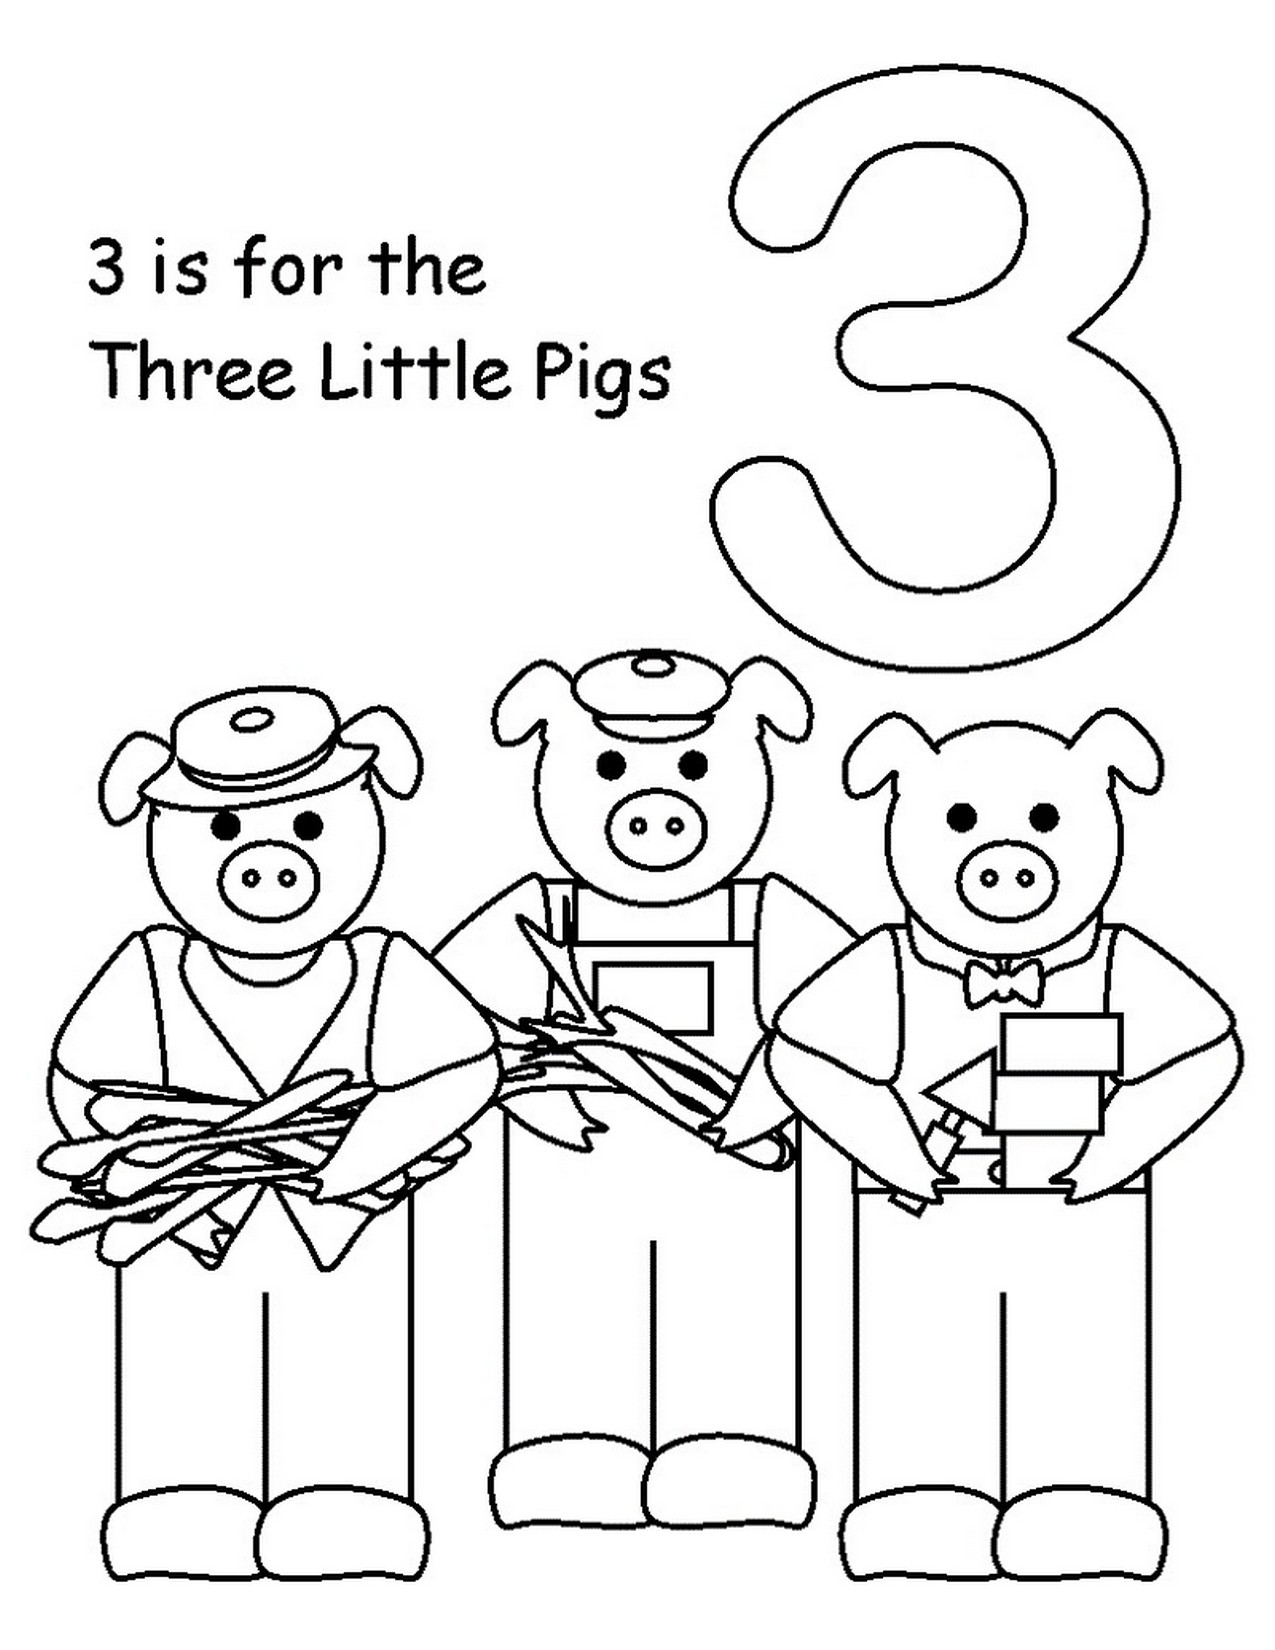 printable pig coloring pages - three little pigs coloring pages for preschool learning